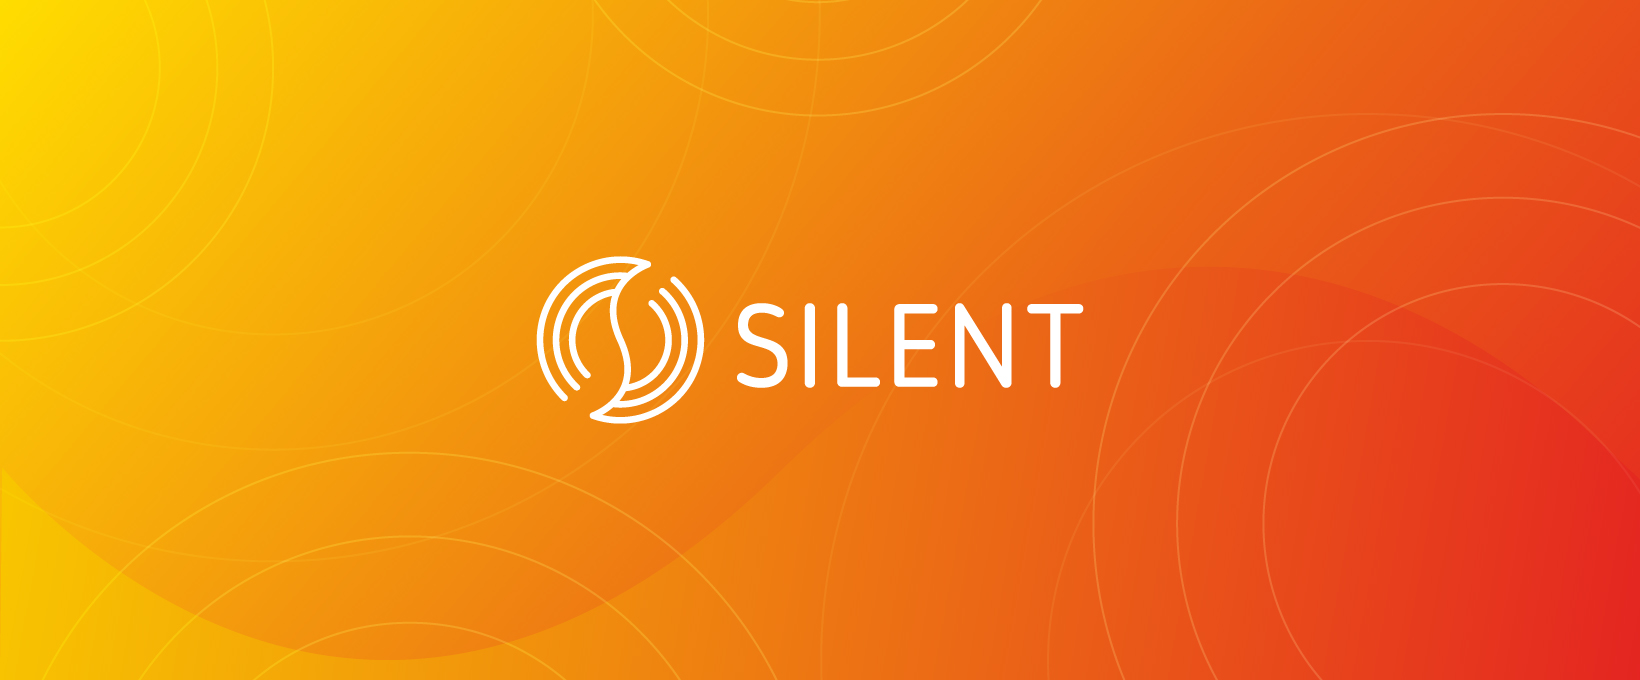 silent | silent ICO | silent power projects ltd